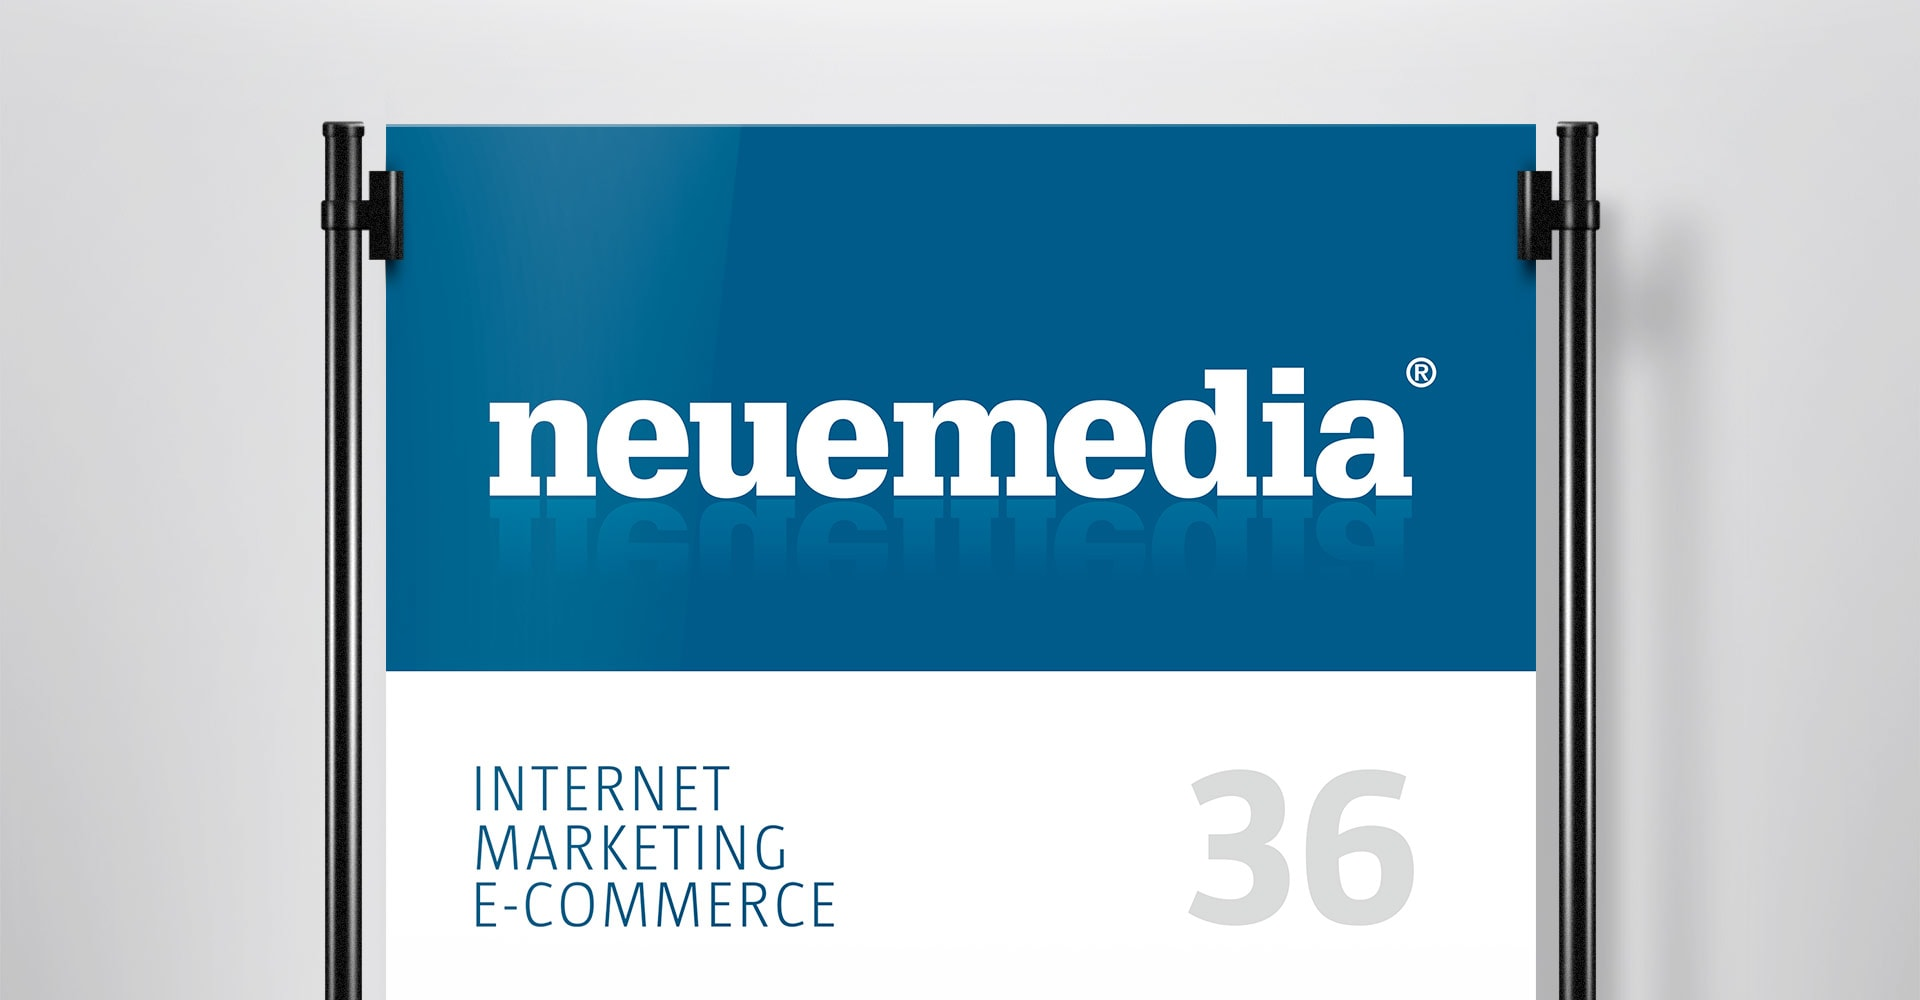 Firmenschild neuemedia Corporate-Design